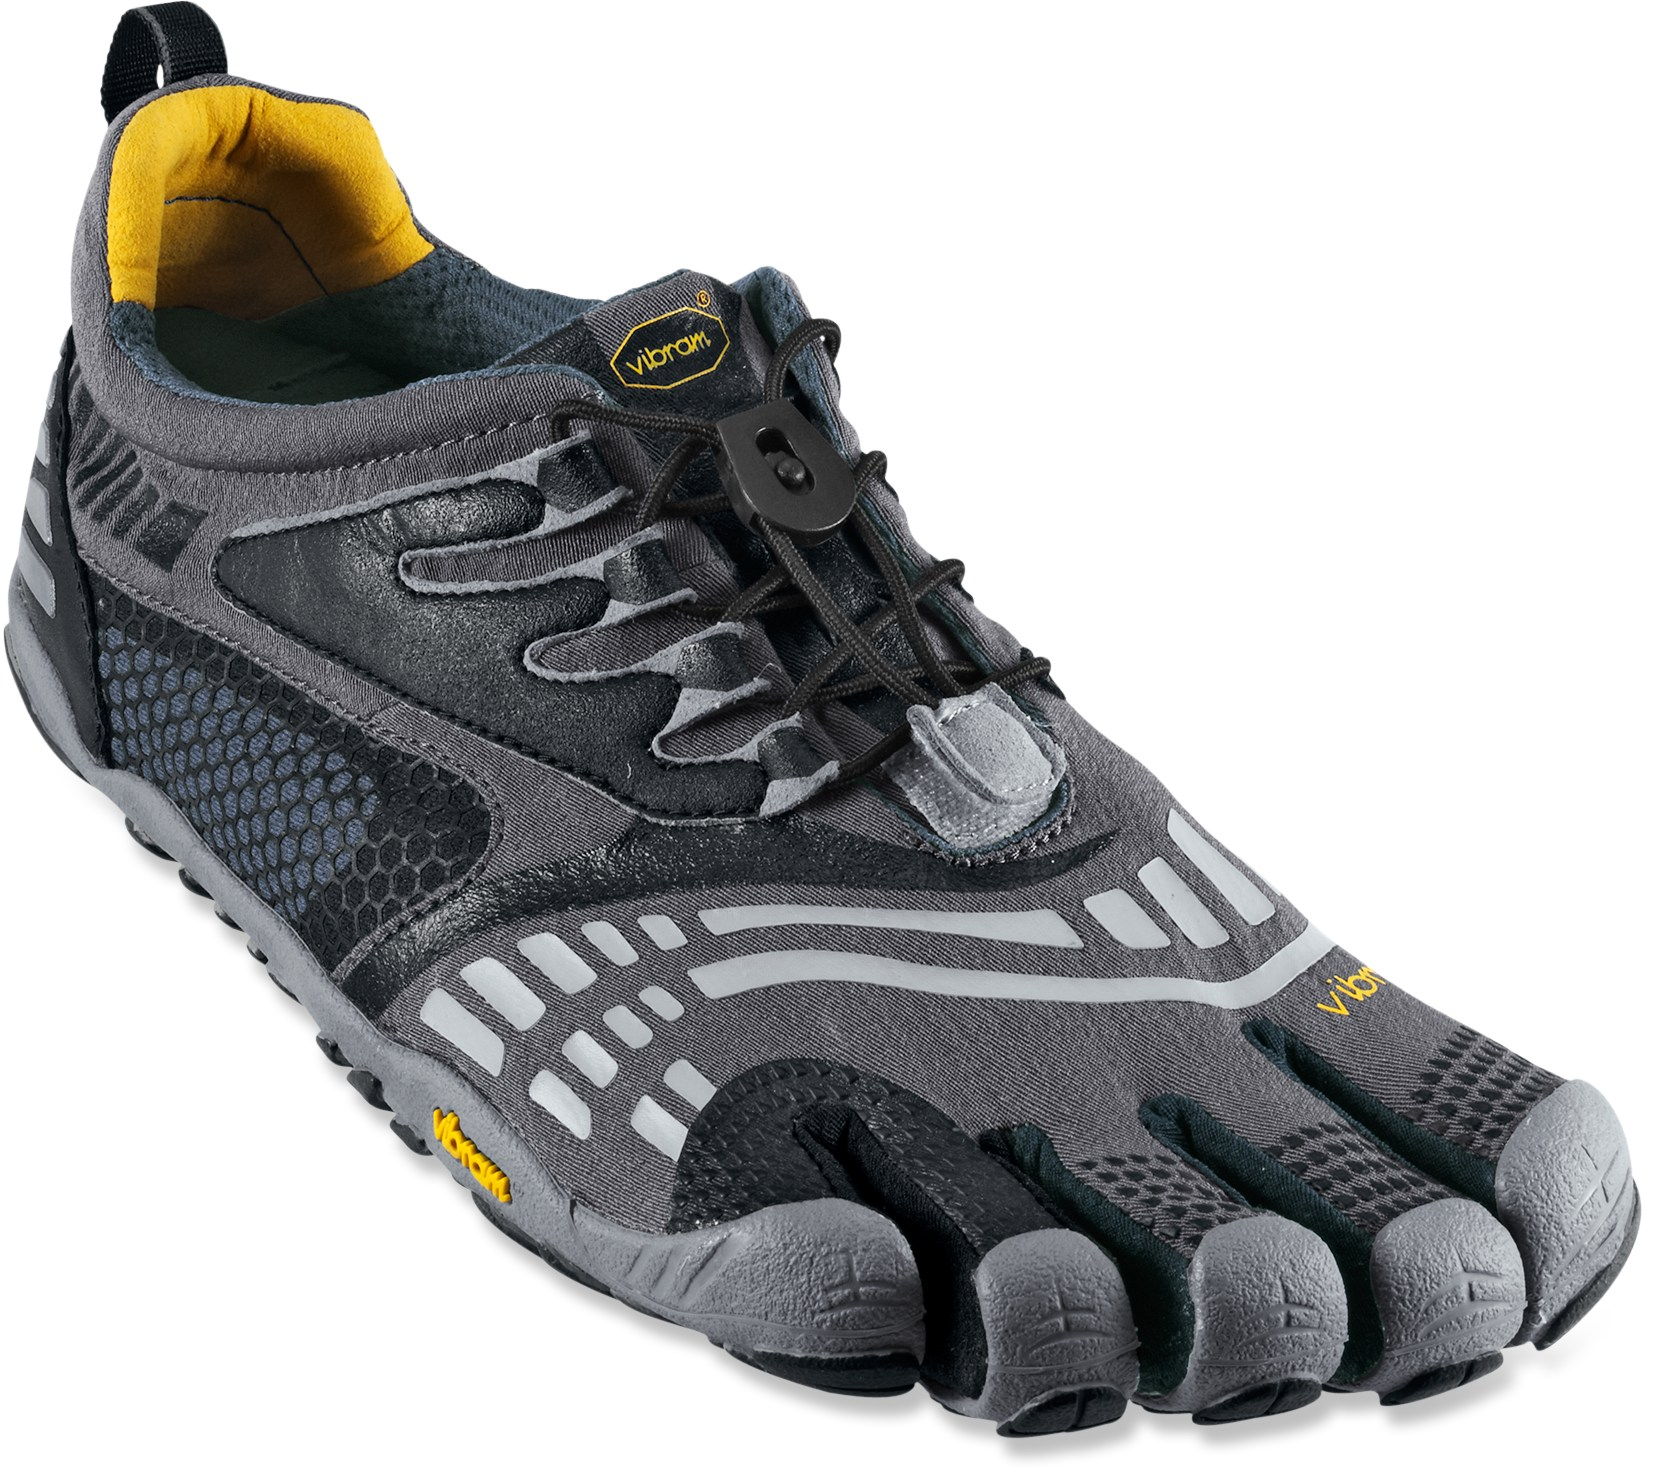 Fitness The Vibram FiveFingers KMD Sport LS multisport shoes boast a quick-lace setup for a snug, comfortable fit when running or doing tough fitness training sessions. - $54.83